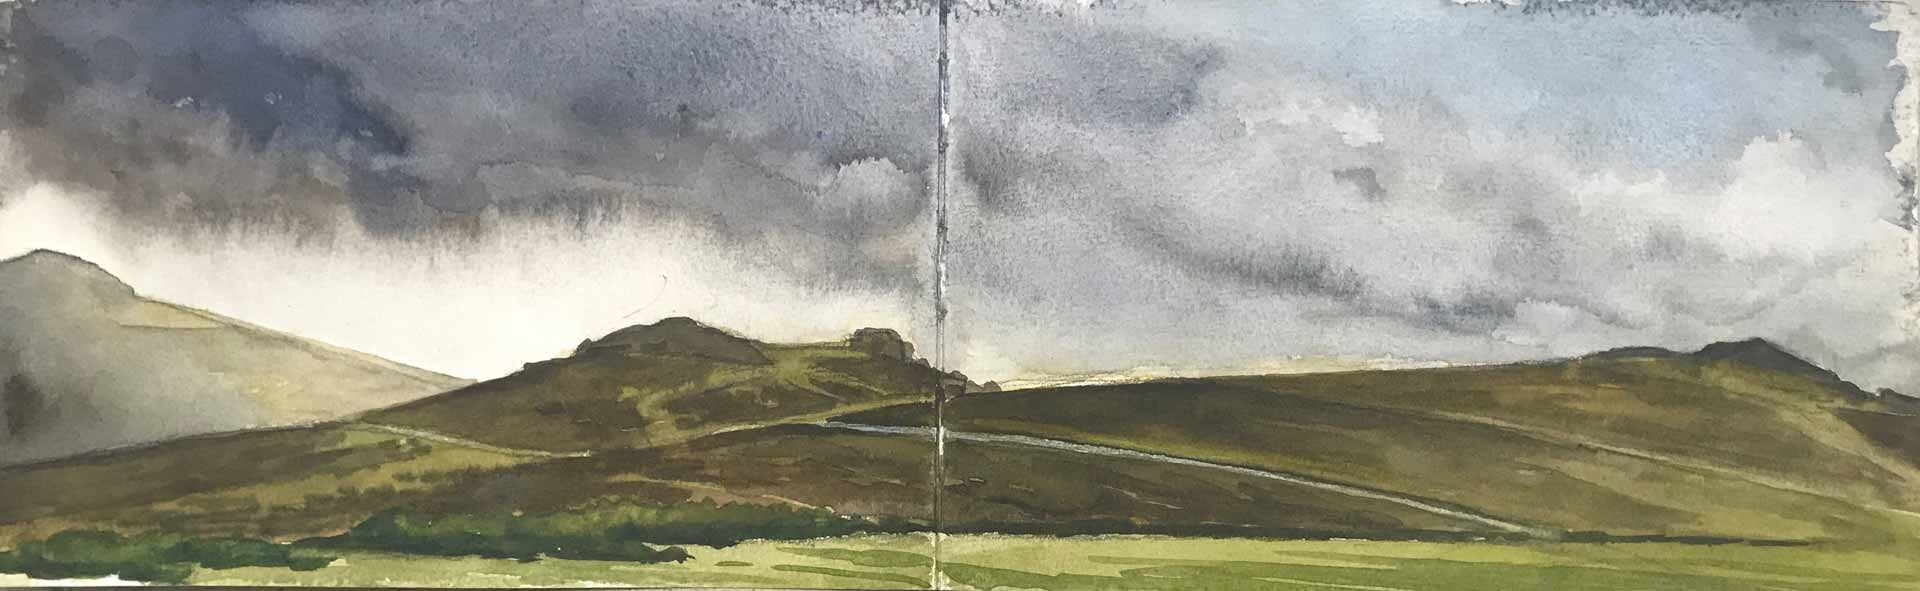 Sketch Of Saddle Tor On Dartmoor. Landscape Painting by Victoria Orr Ewing